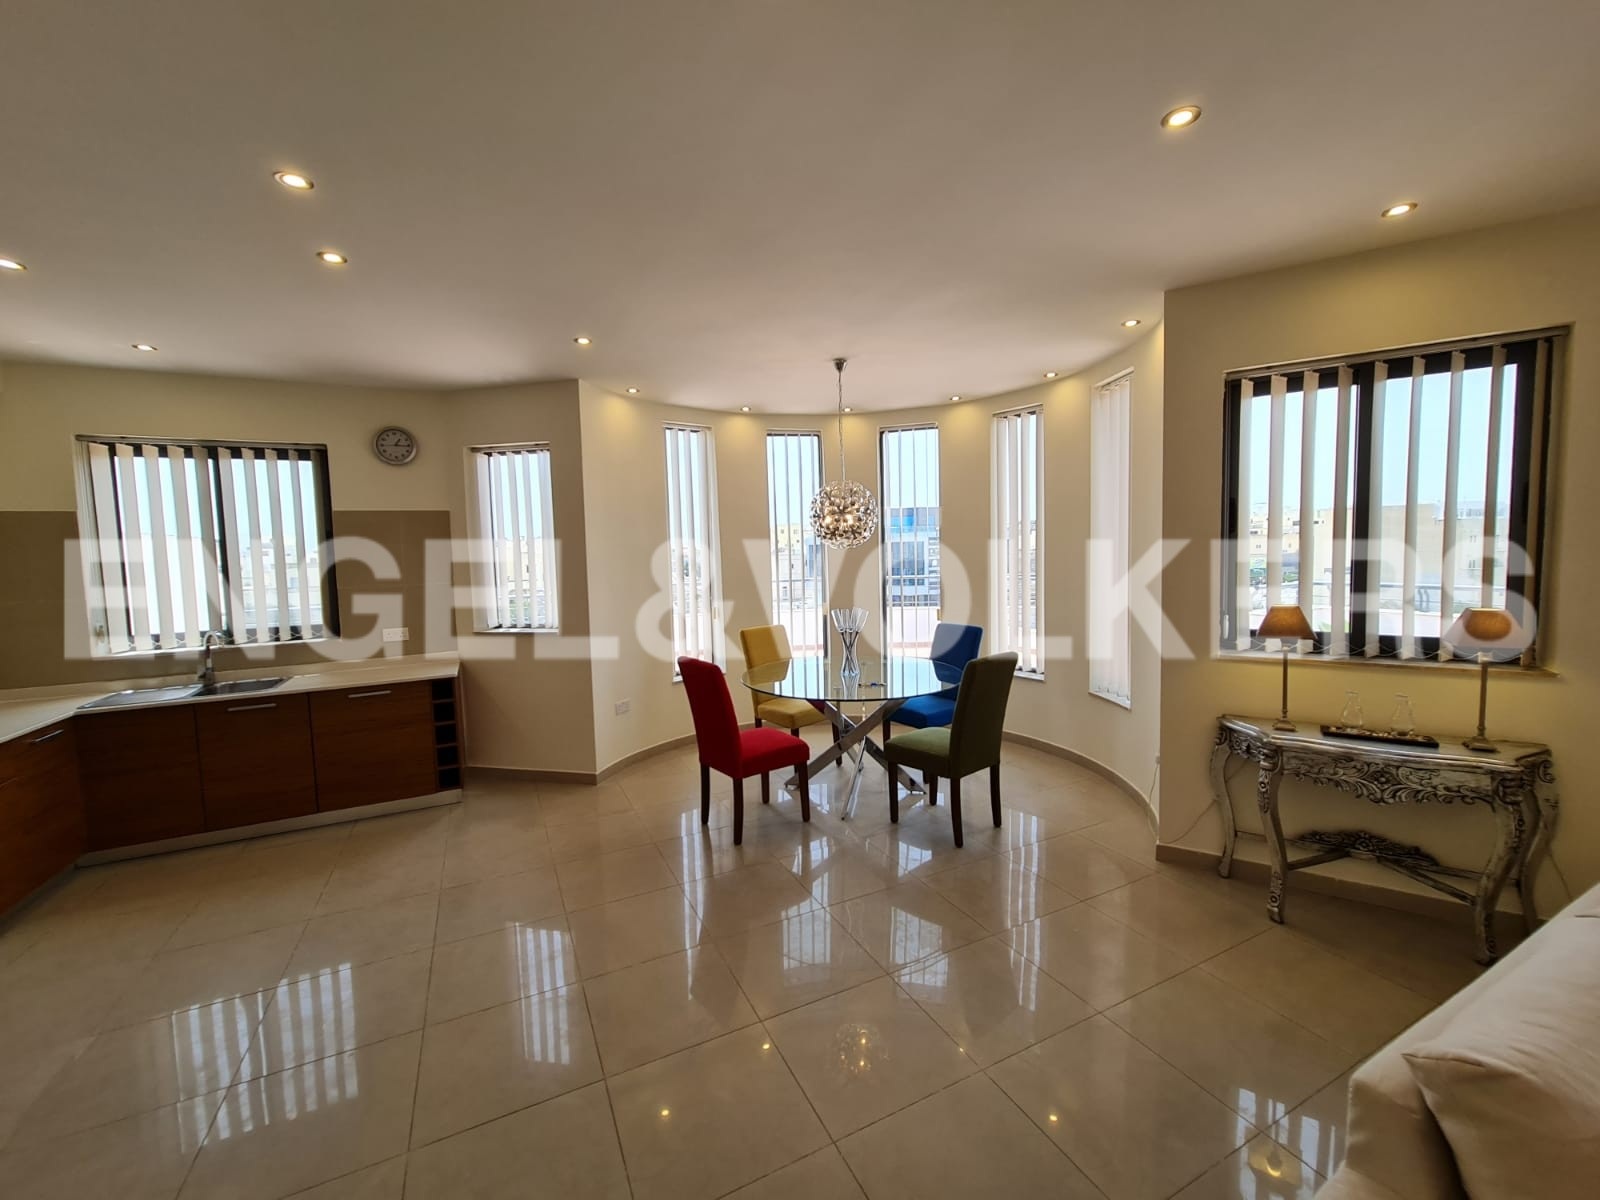 Apartment in Msida - Kitchen / Living / Dining Area